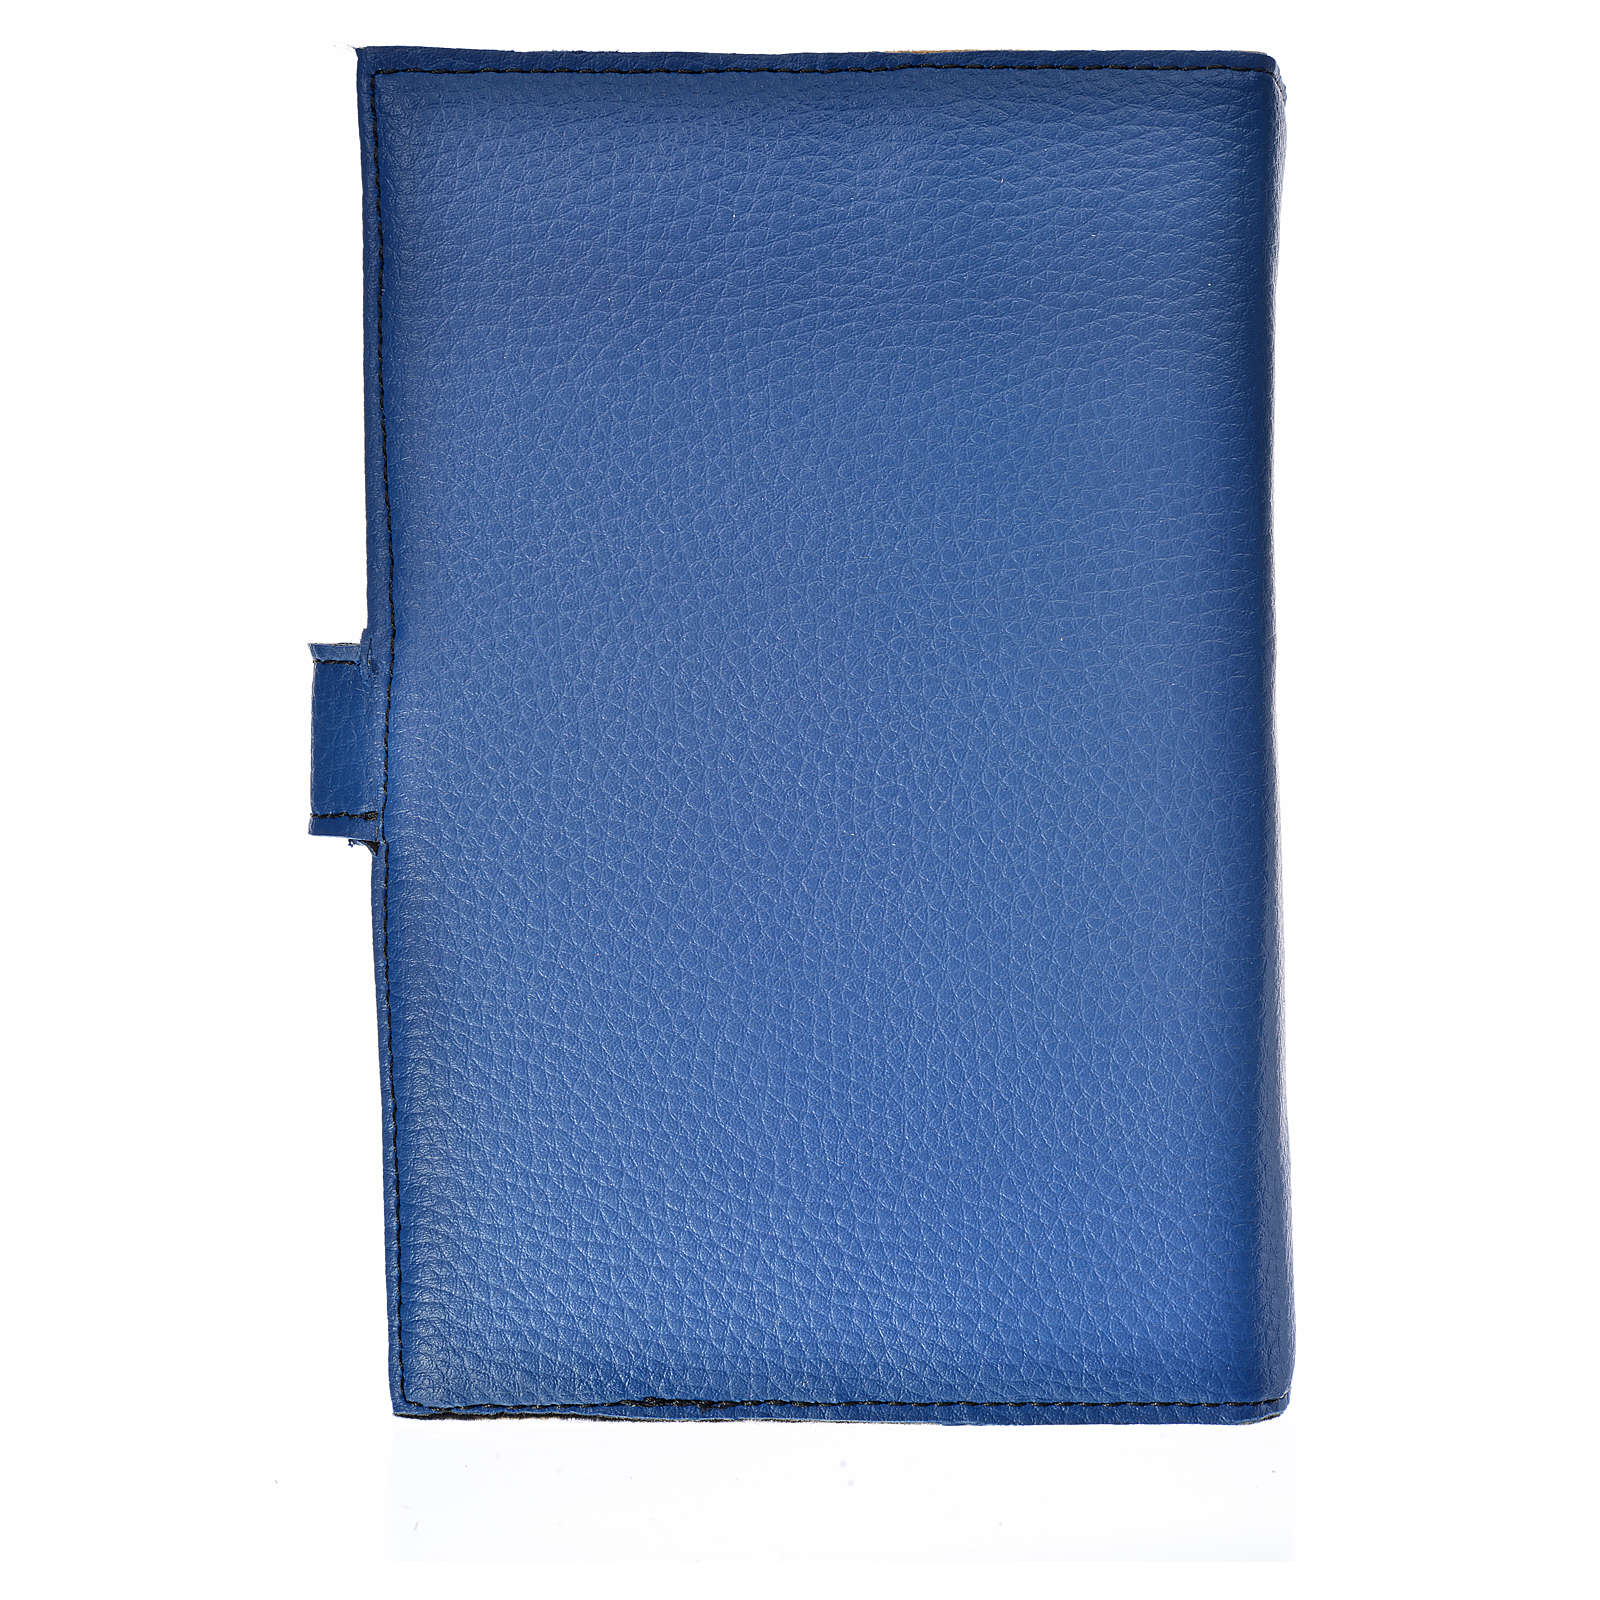 Cover for the Liturgy of the hours blue bonded leather Our Lady 4